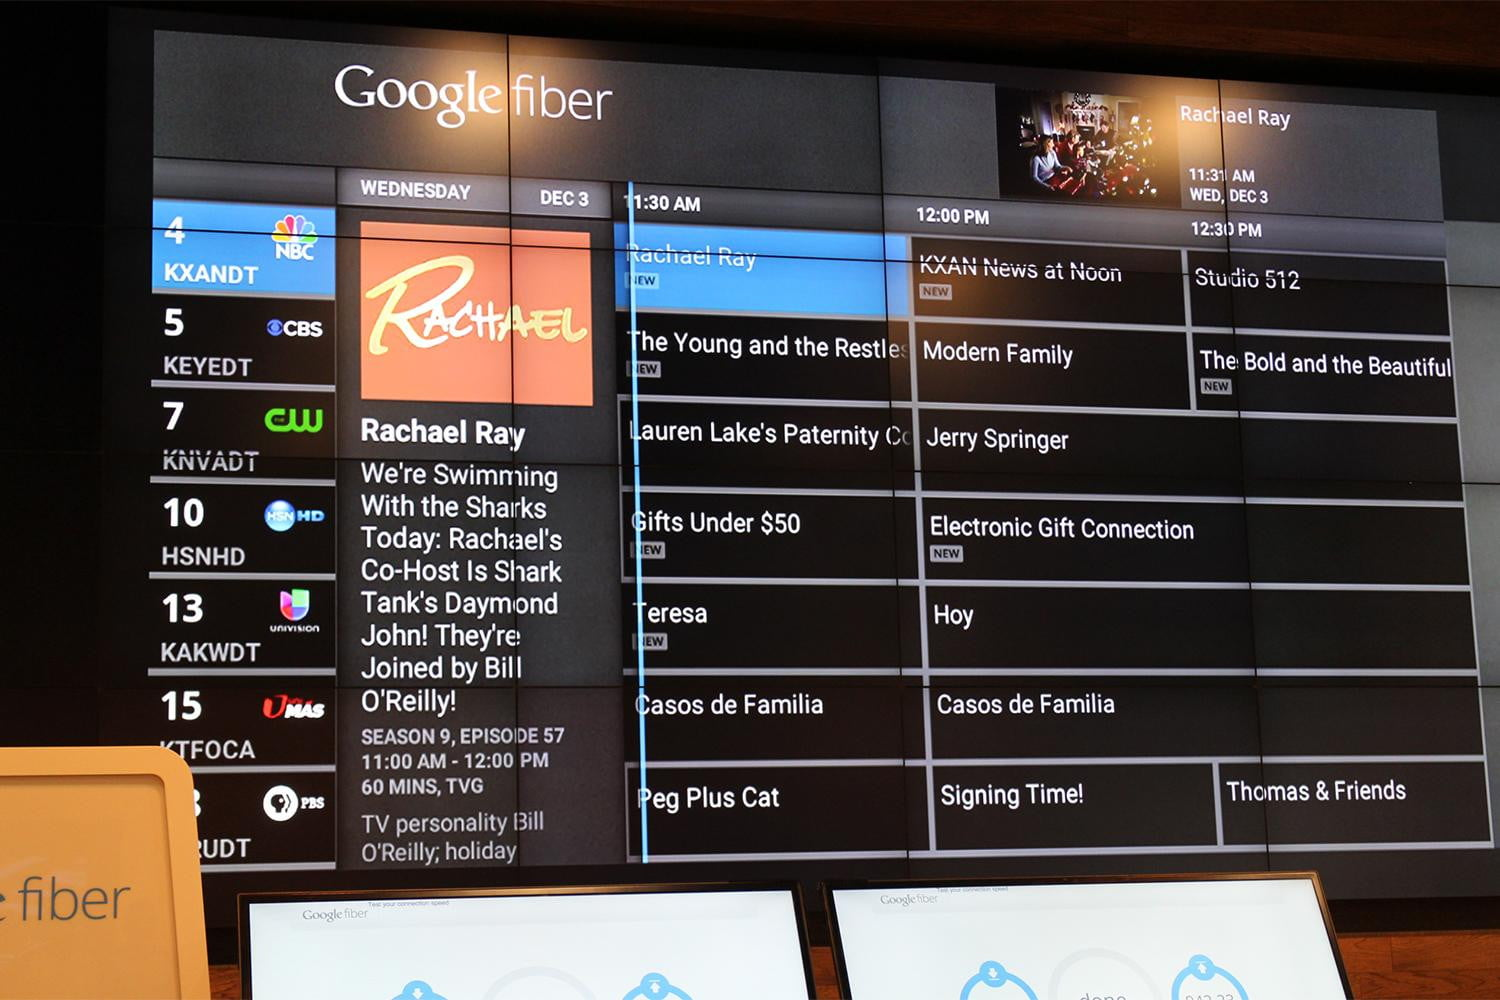 How Google Fiber Will Deliver 1 Gig Internet And Voip Tv